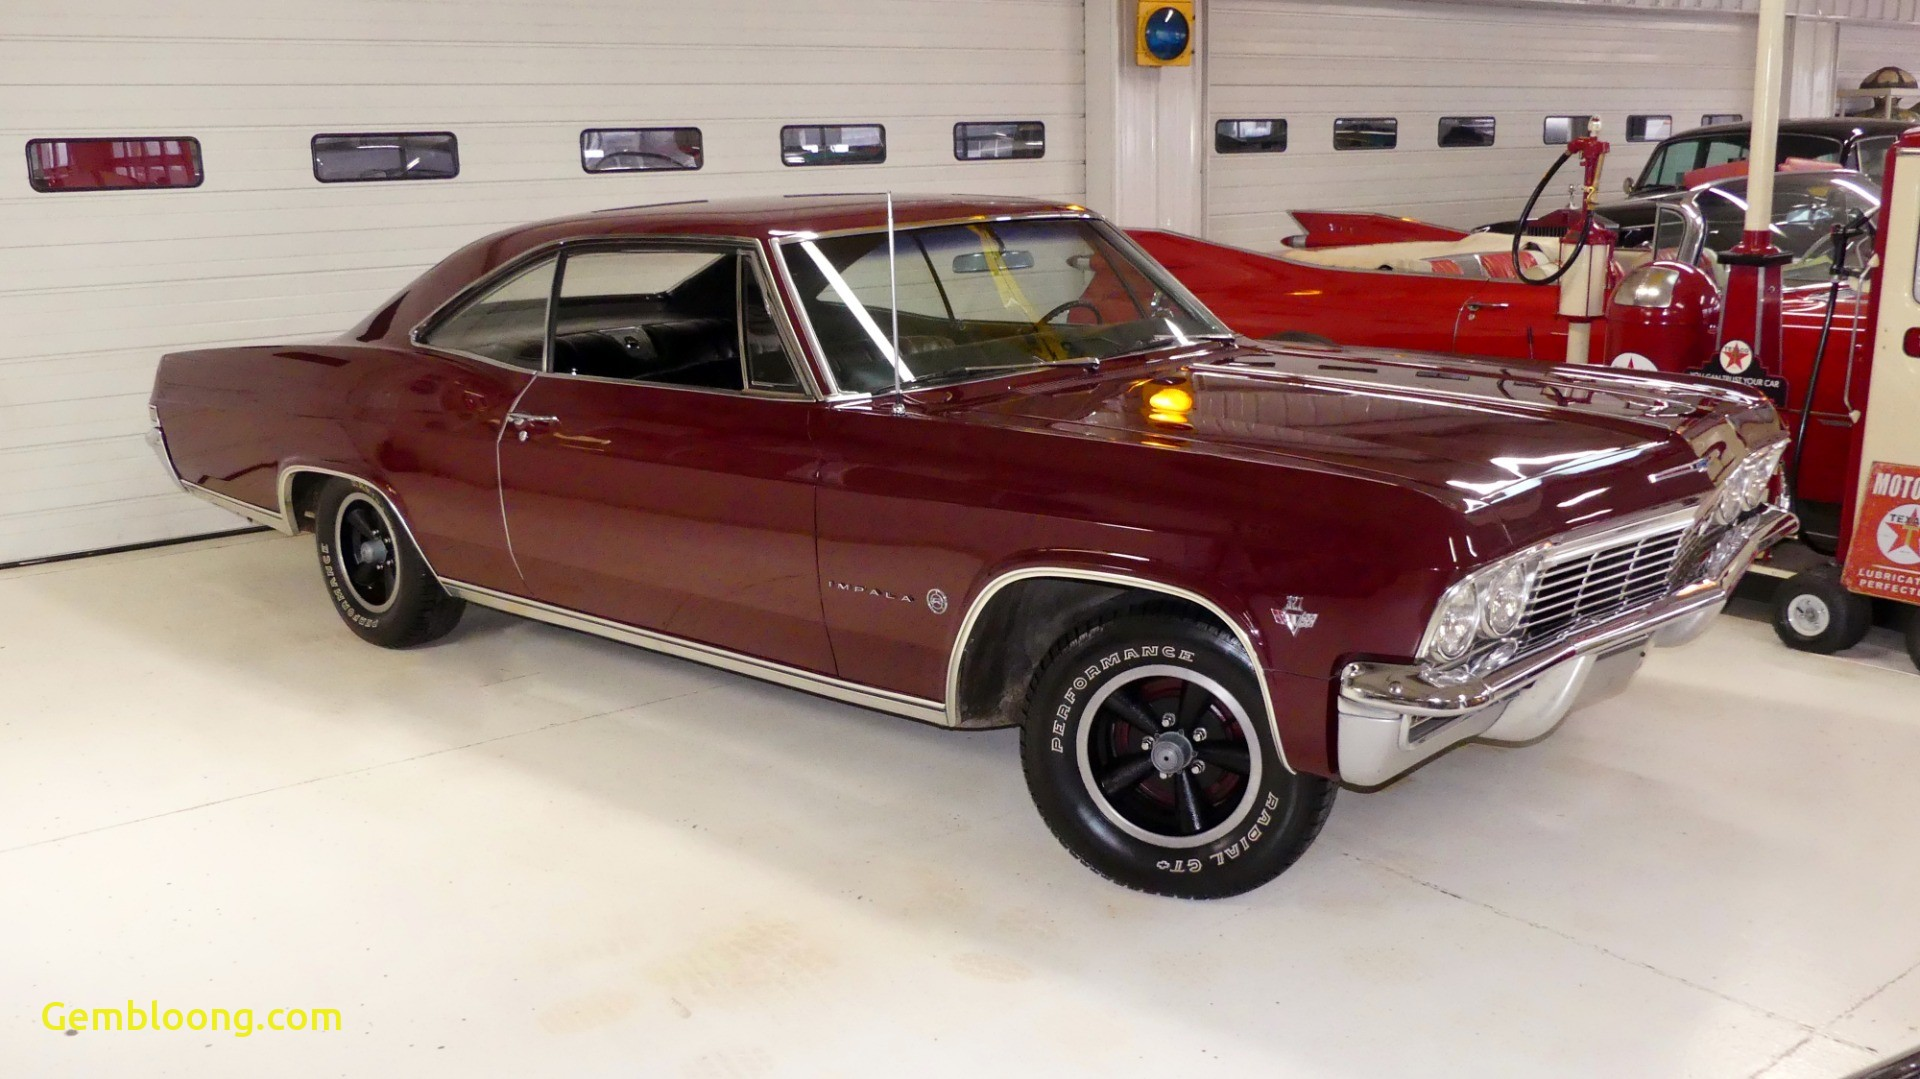 Impala Cars for Sale Near Me New 1965 Chevrolet Impala Stock for Sale Near Columbus